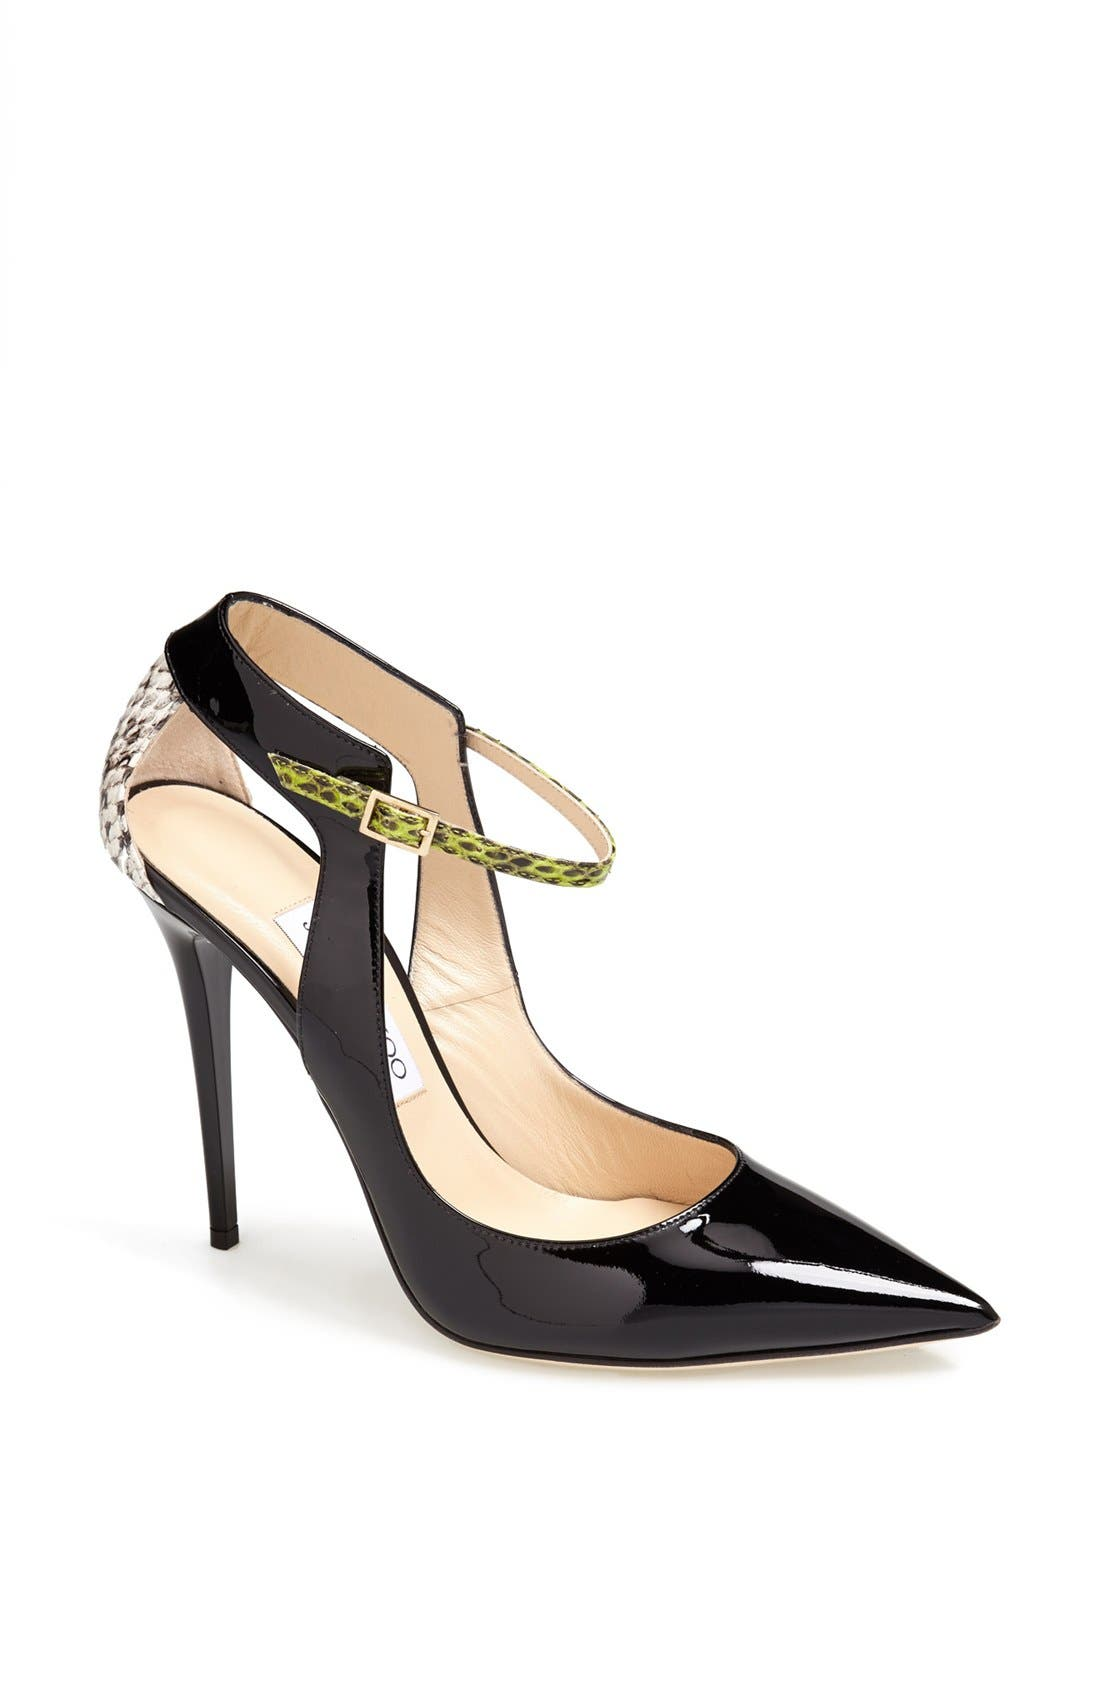 Alternate Image 1 Selected - Jimmy Choo 'Maiden' Pointy Toe Pump